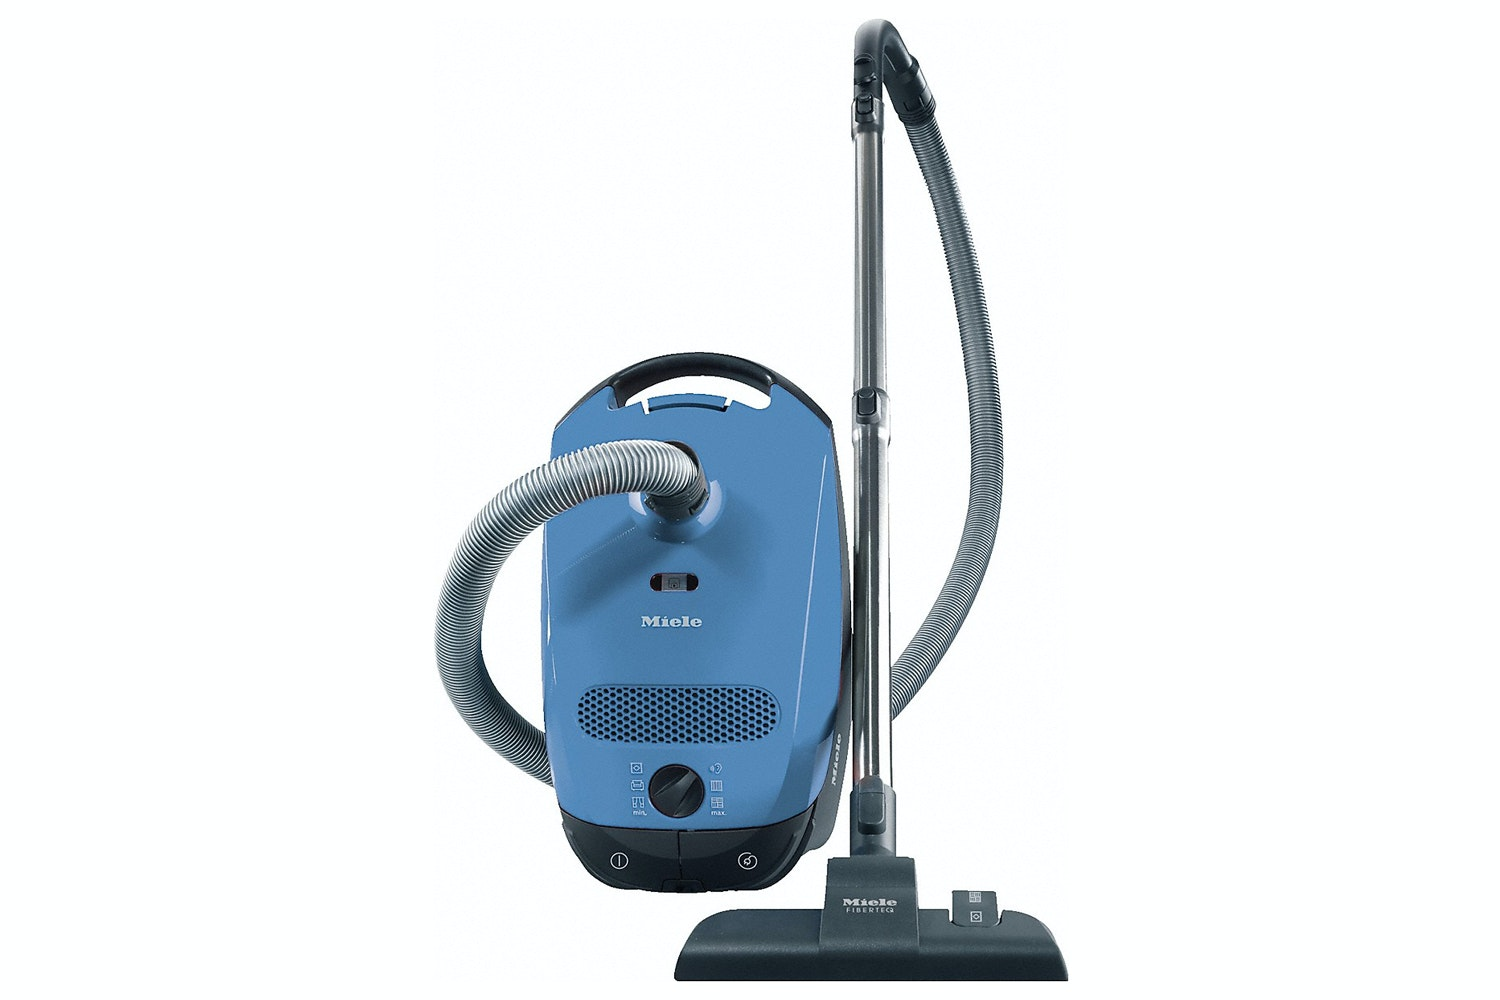 Classic C1 Junior PowerLine - SBAF3  Cylinder vacuum cleaner   High suction power for thorough vacuuming at an attractive entry level price